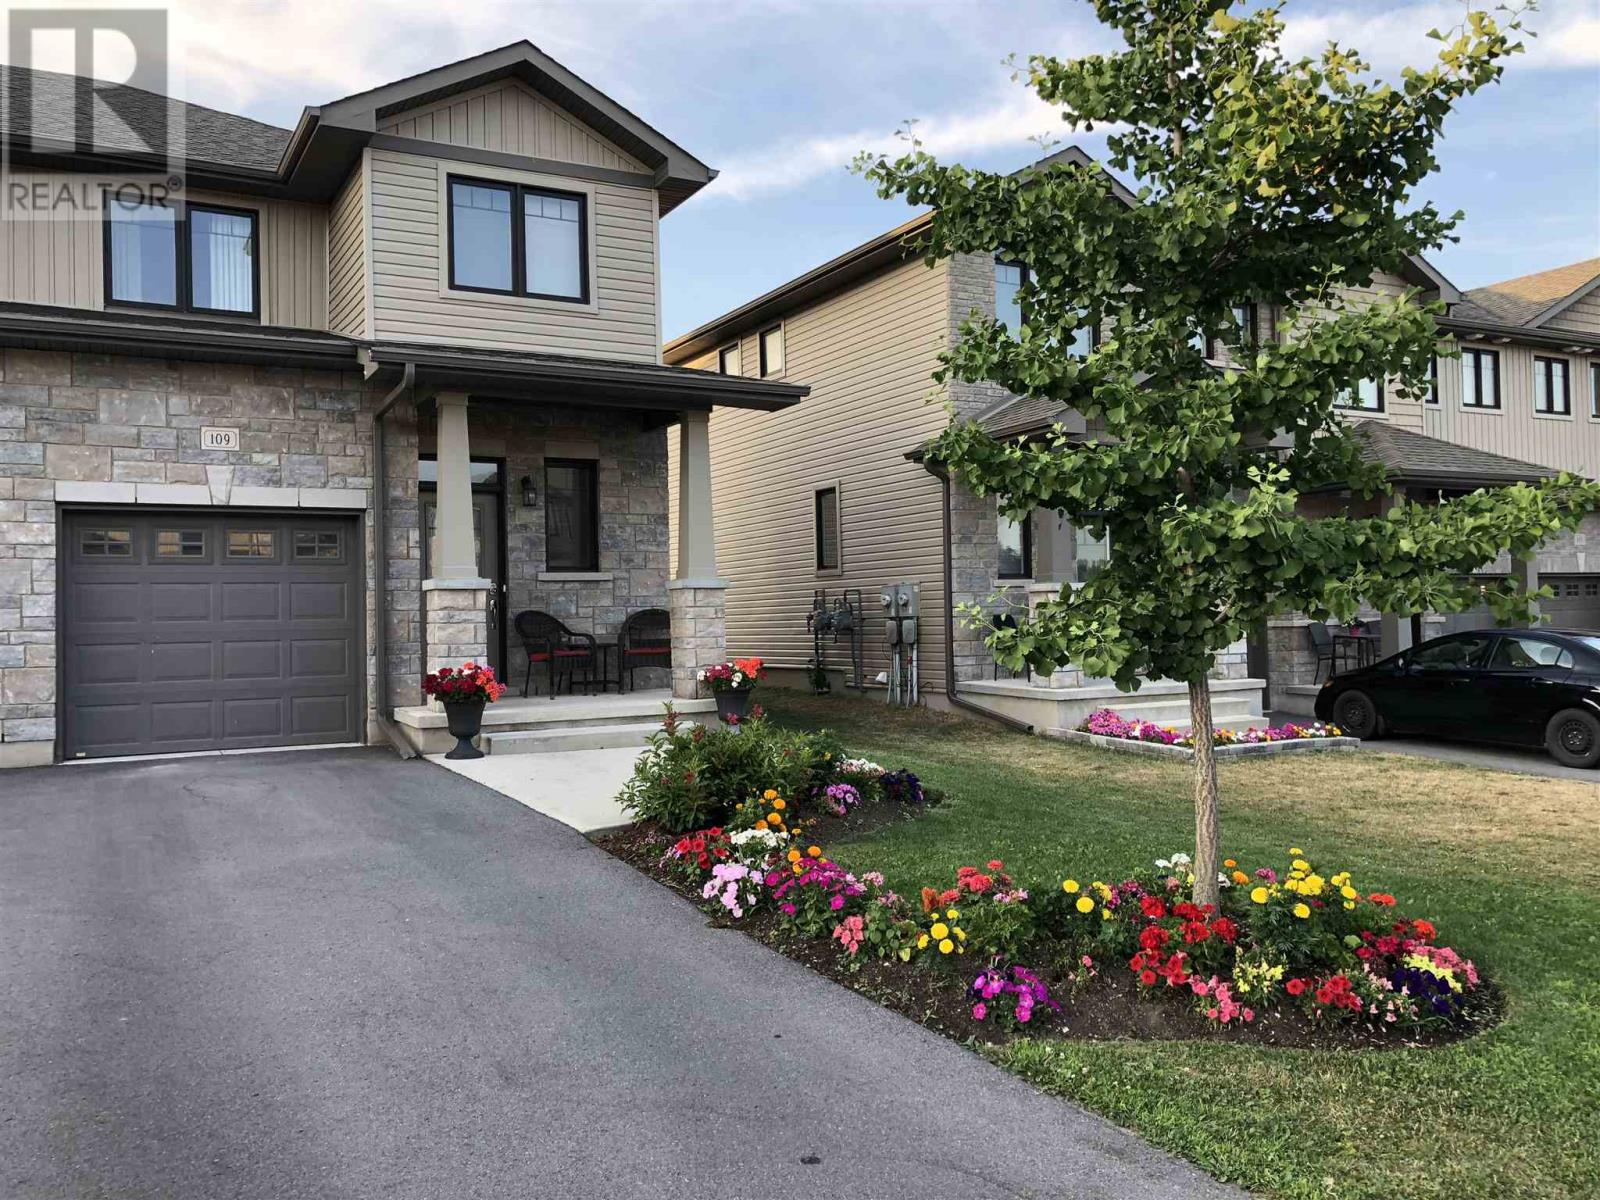 Removed: 109 Simurda Court, Amherstview, ON - Removed on 2018-09-24 18:30:28